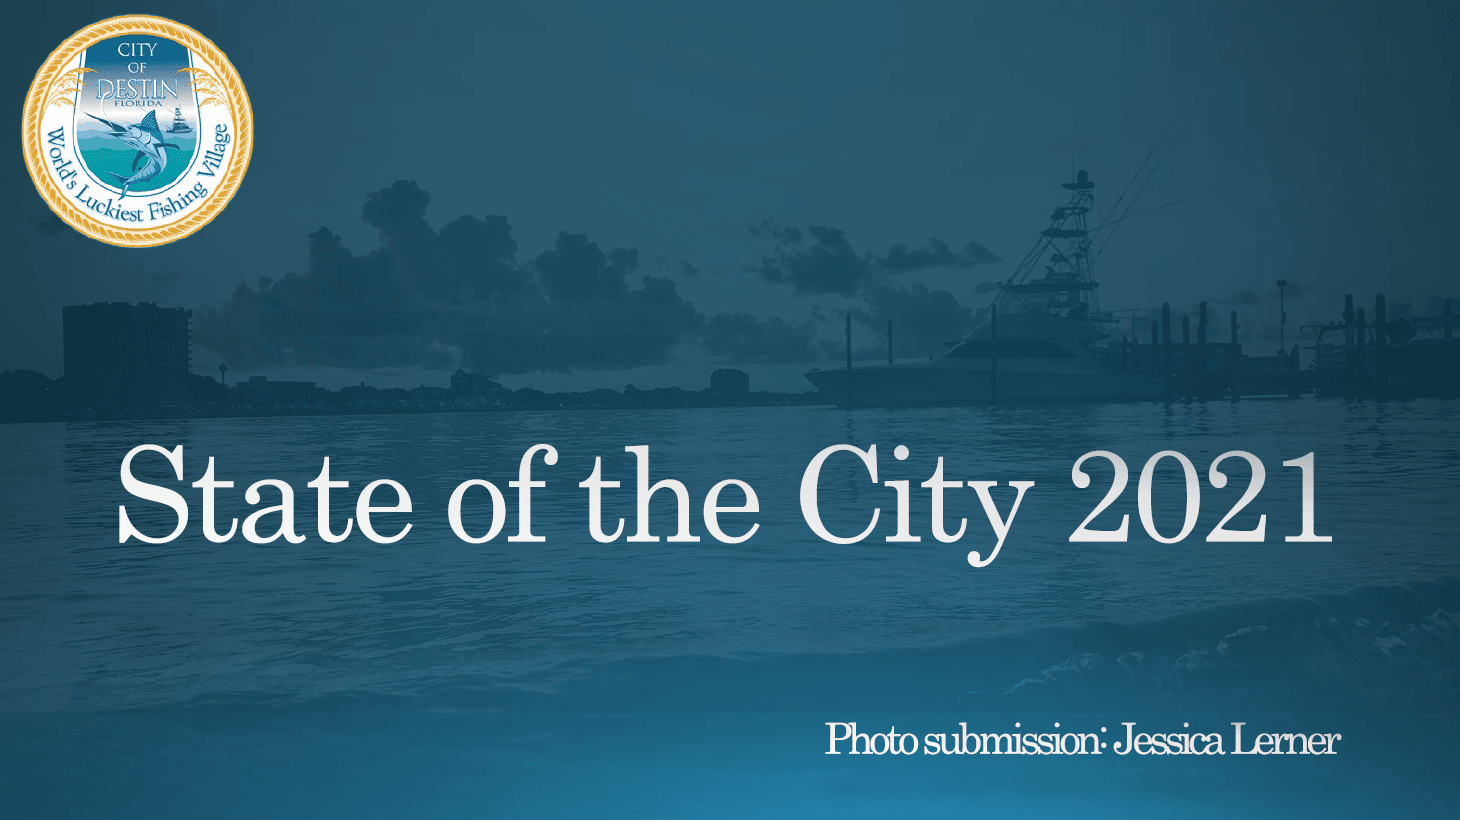 A picture of a boat in the Destin Harbor with State of the City 2021 written across the photo